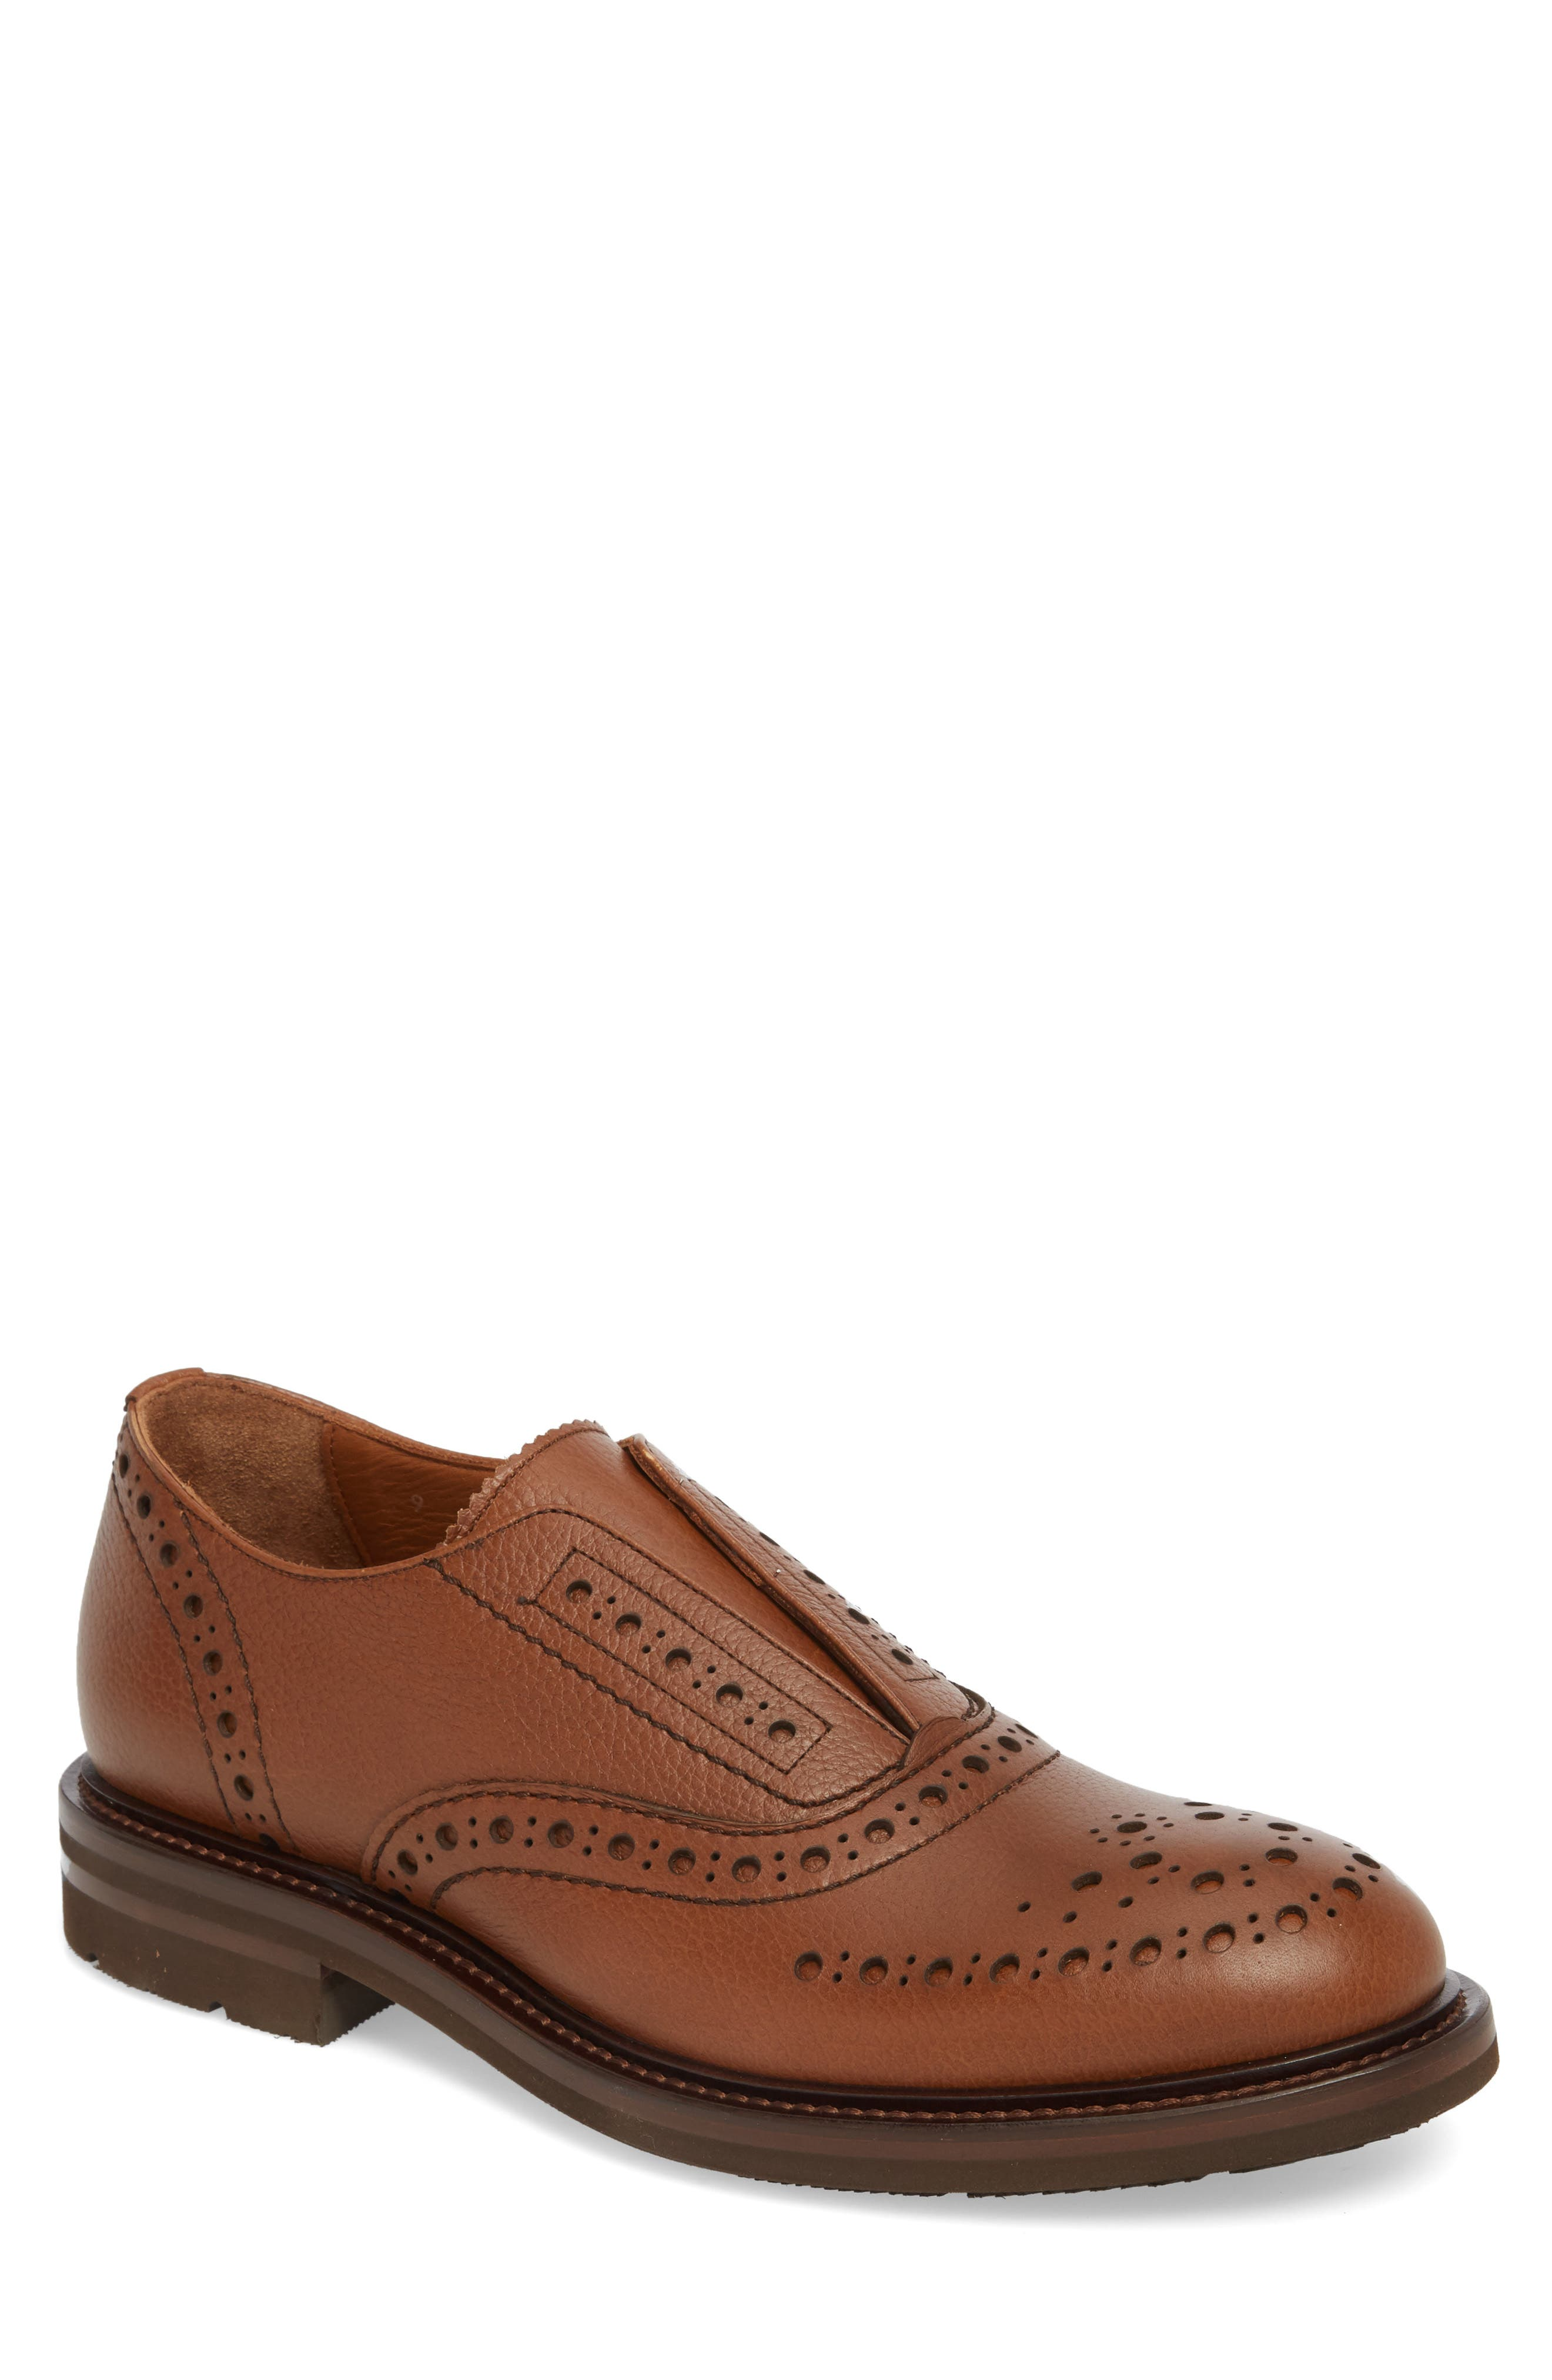 Romeo Weatherproof Laceless Oxford,                             Main thumbnail 1, color,                             NUT